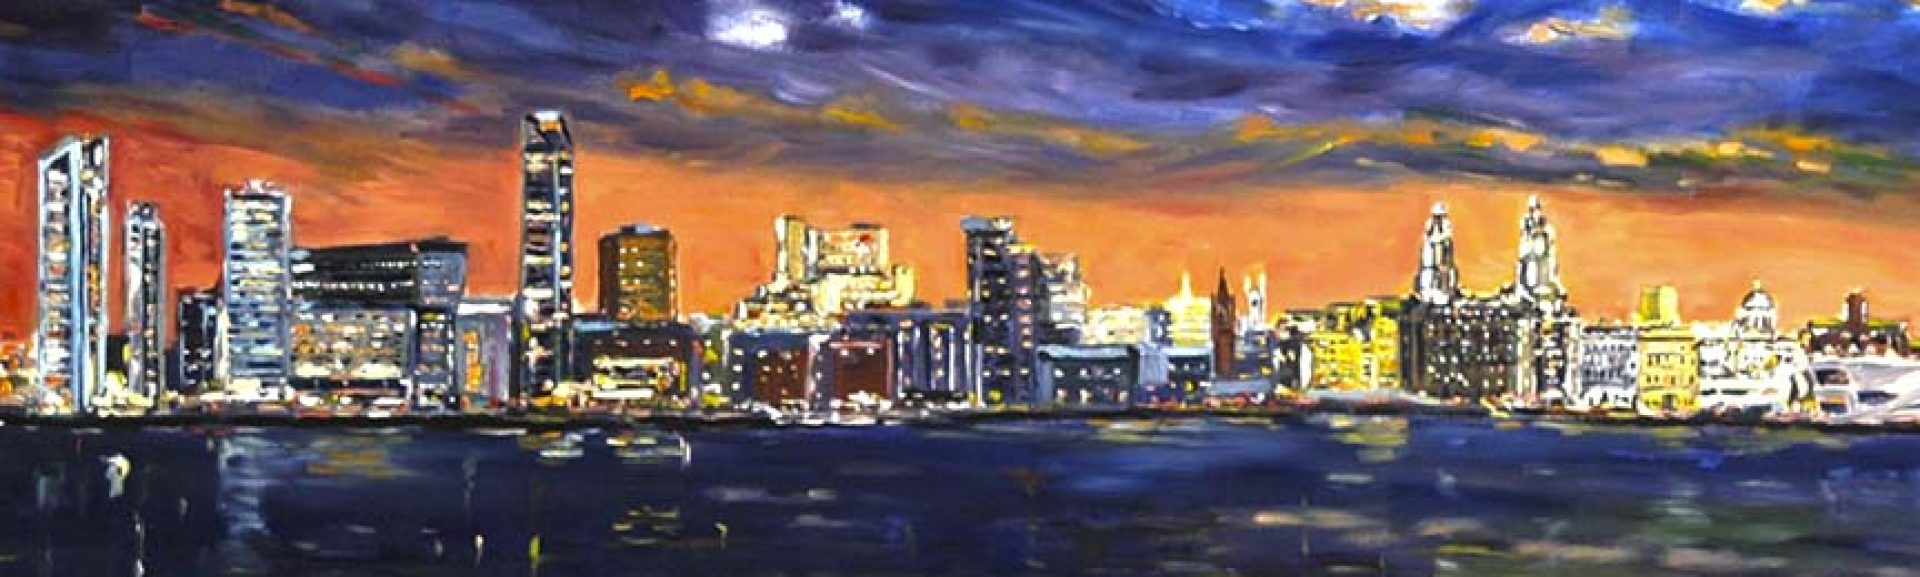 paintingsofliverpool